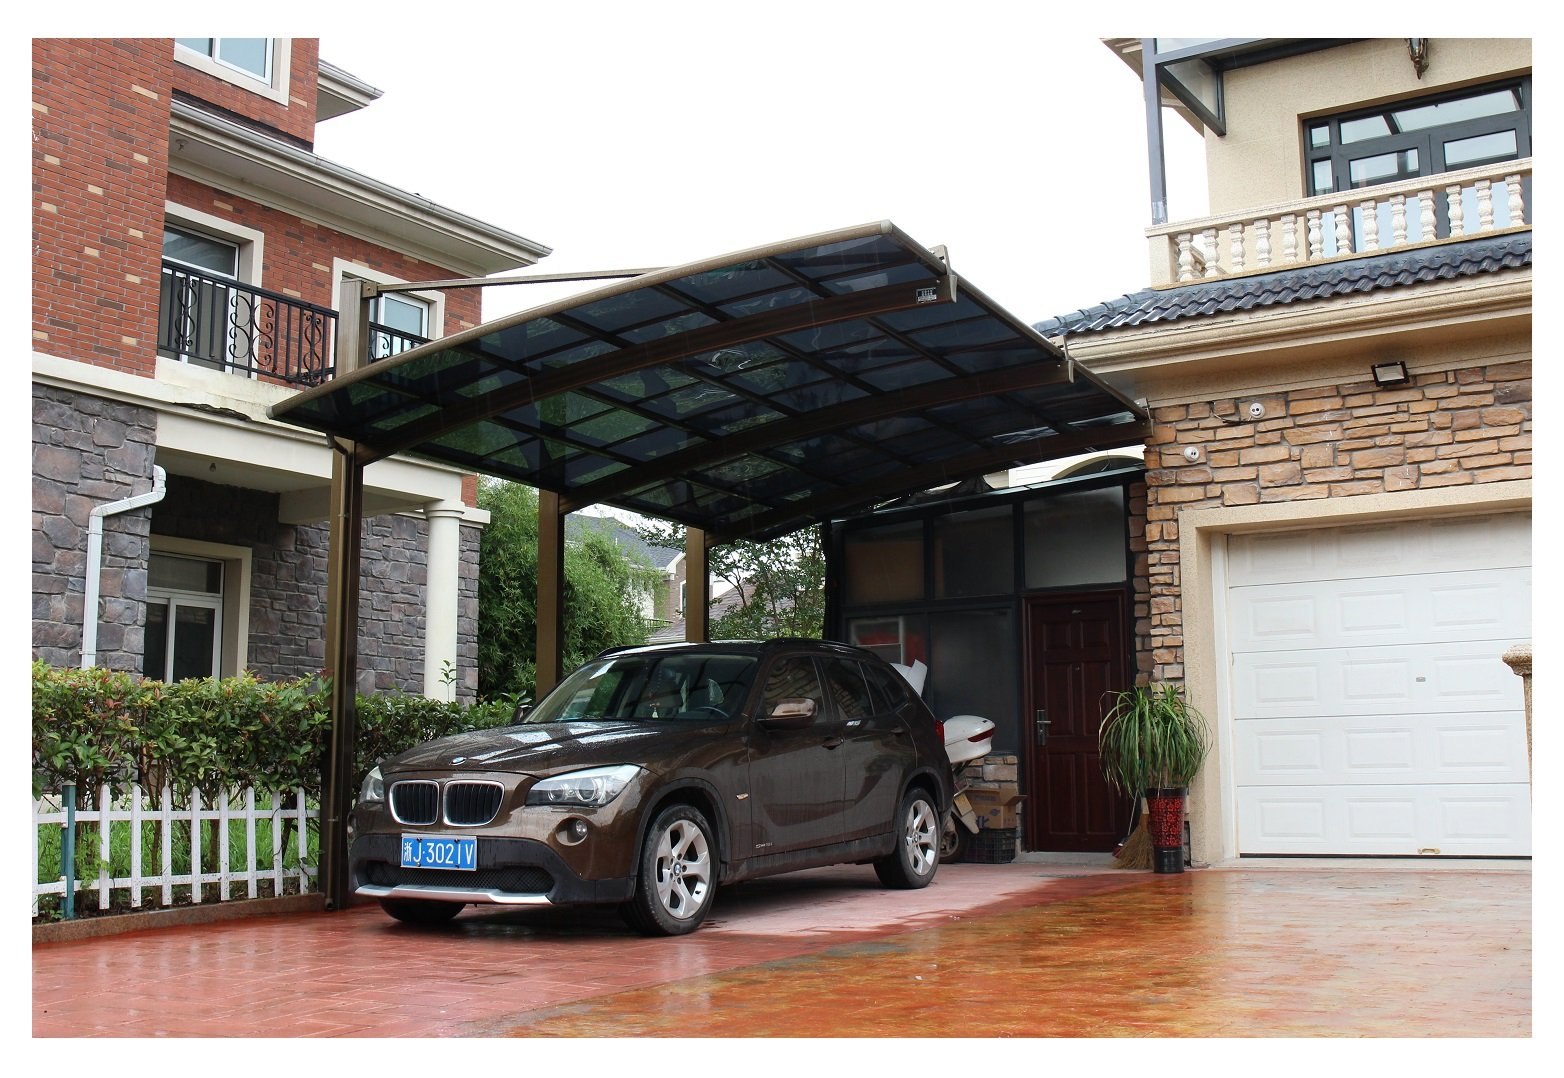 10 x 20 Feet Metal Carports Canopies Garage Tent Shelter Gazebo Aluminum With Gutter And Polycarbonate Panels, Metal RV Carport for Car, Yacht And Copter,Diagonal Style